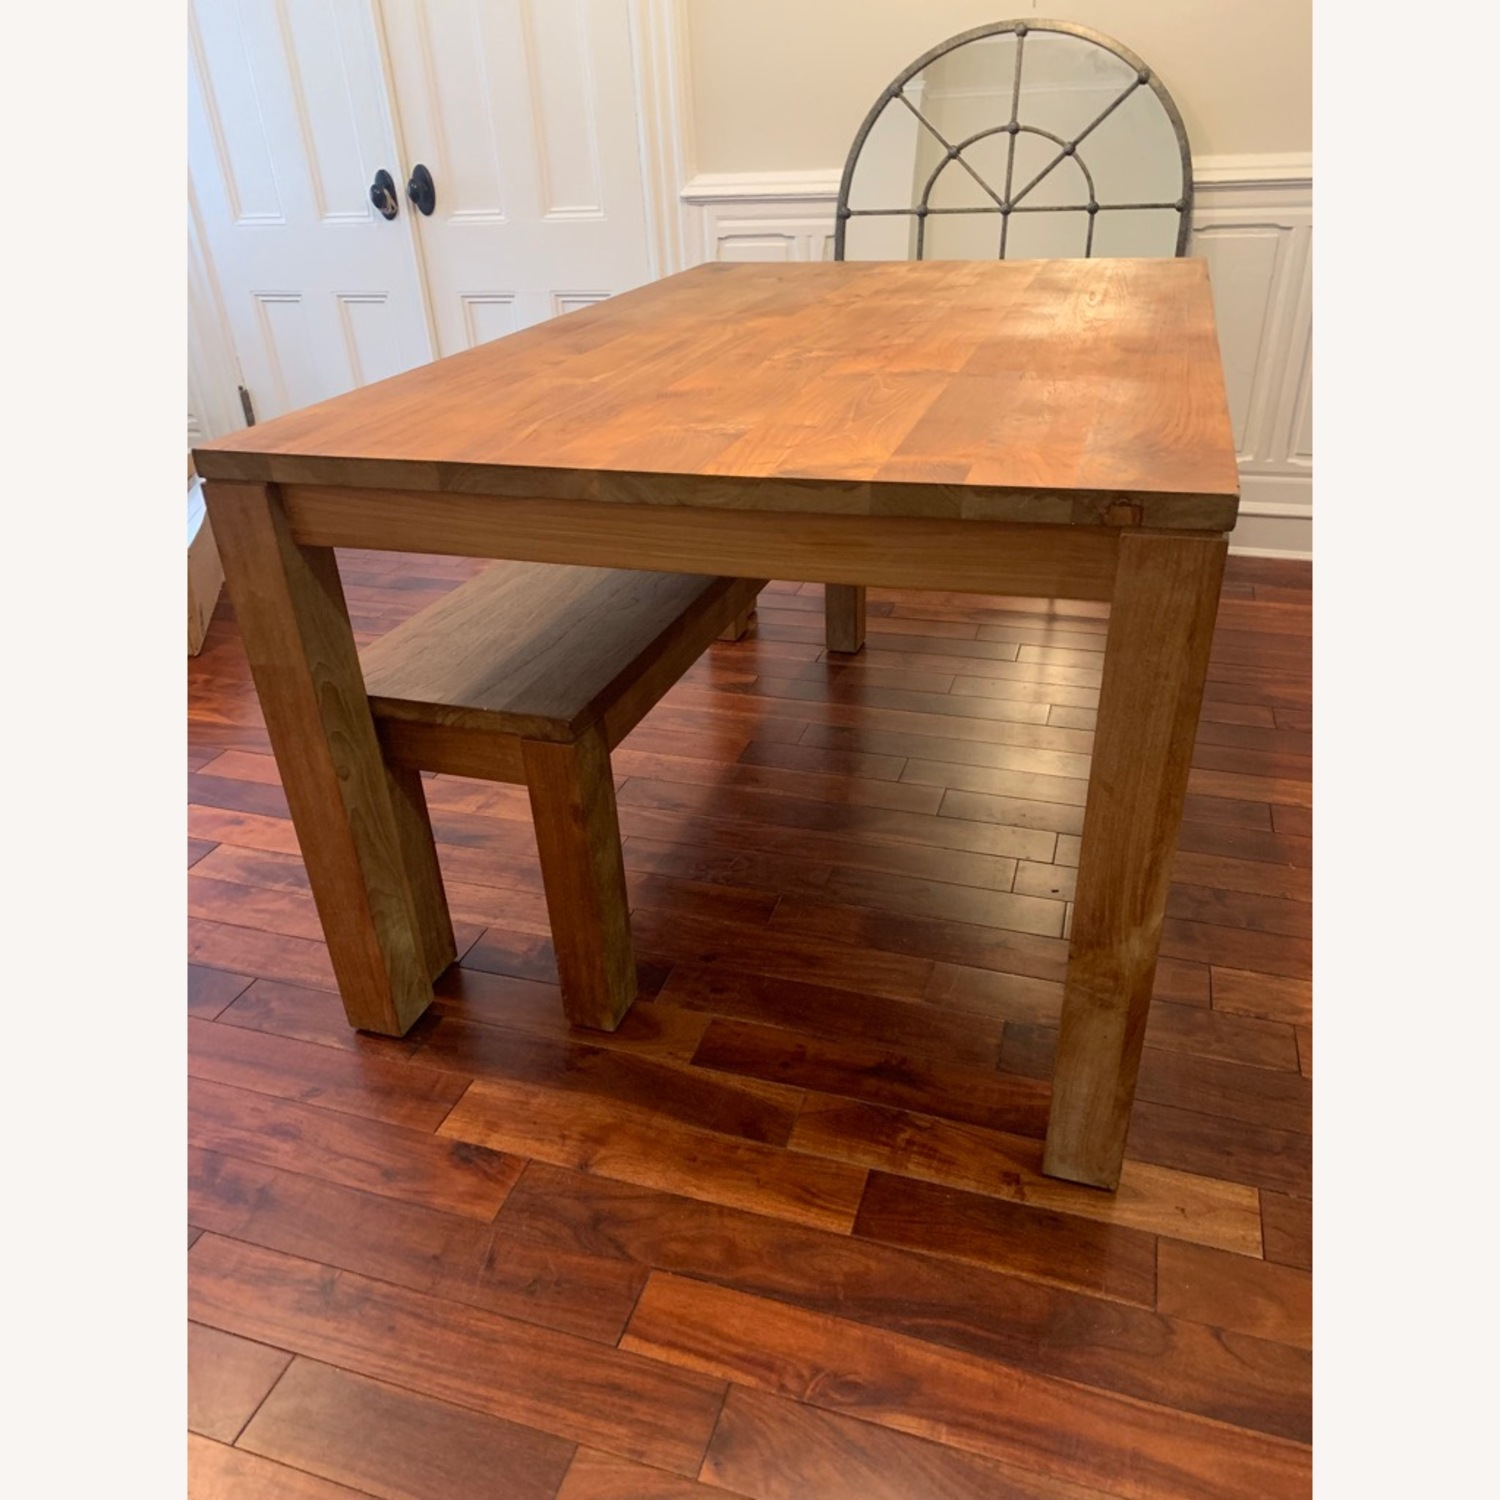 Crate & Barrel Solid Wood Table - image-8